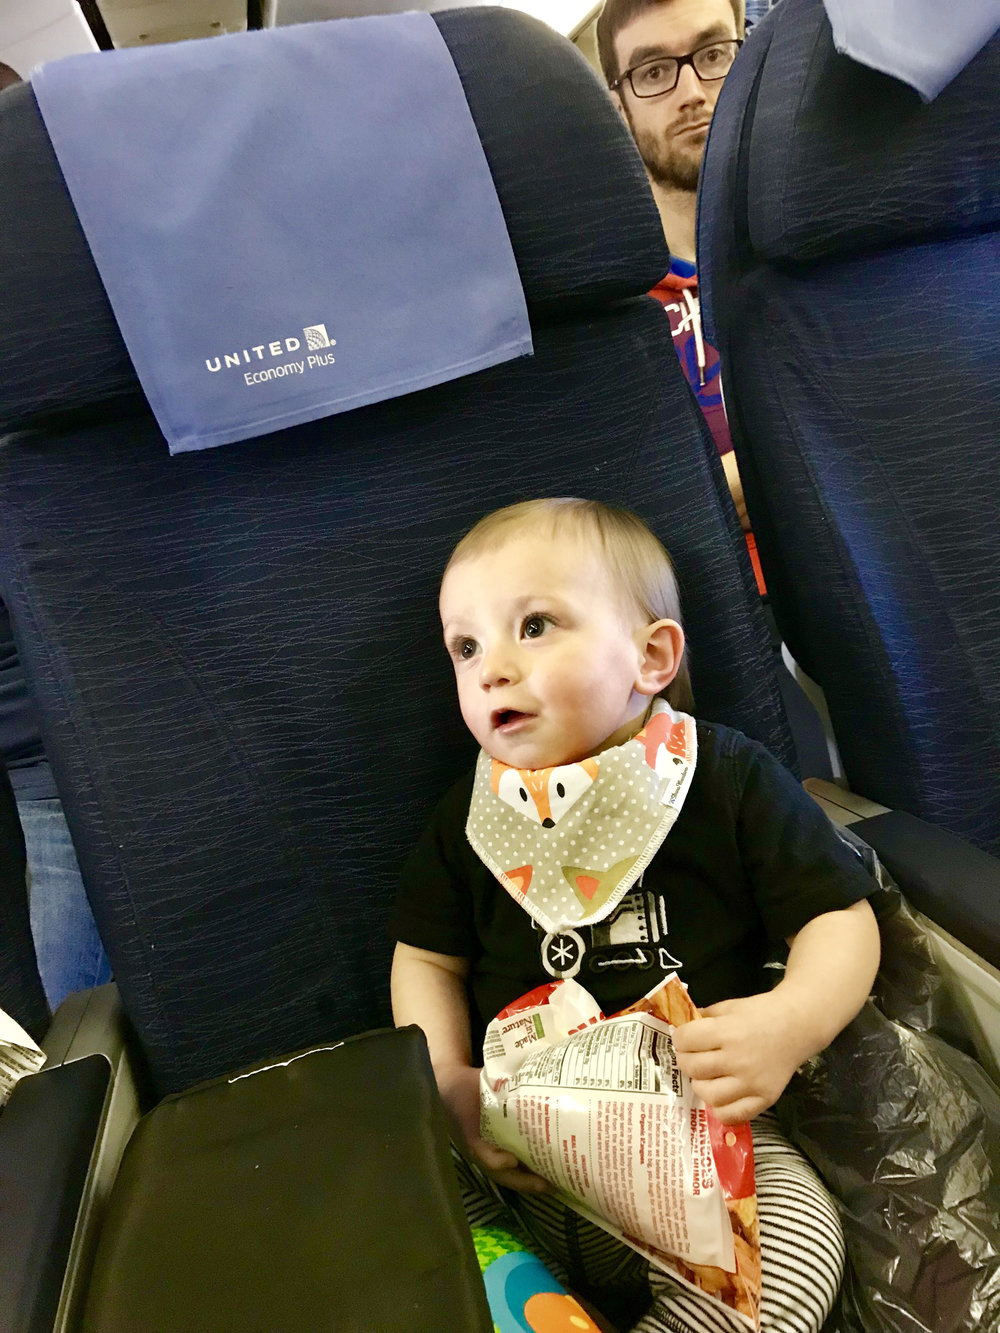 Preston is excited for his first flight overseas....and so is the guy sitting behind him.